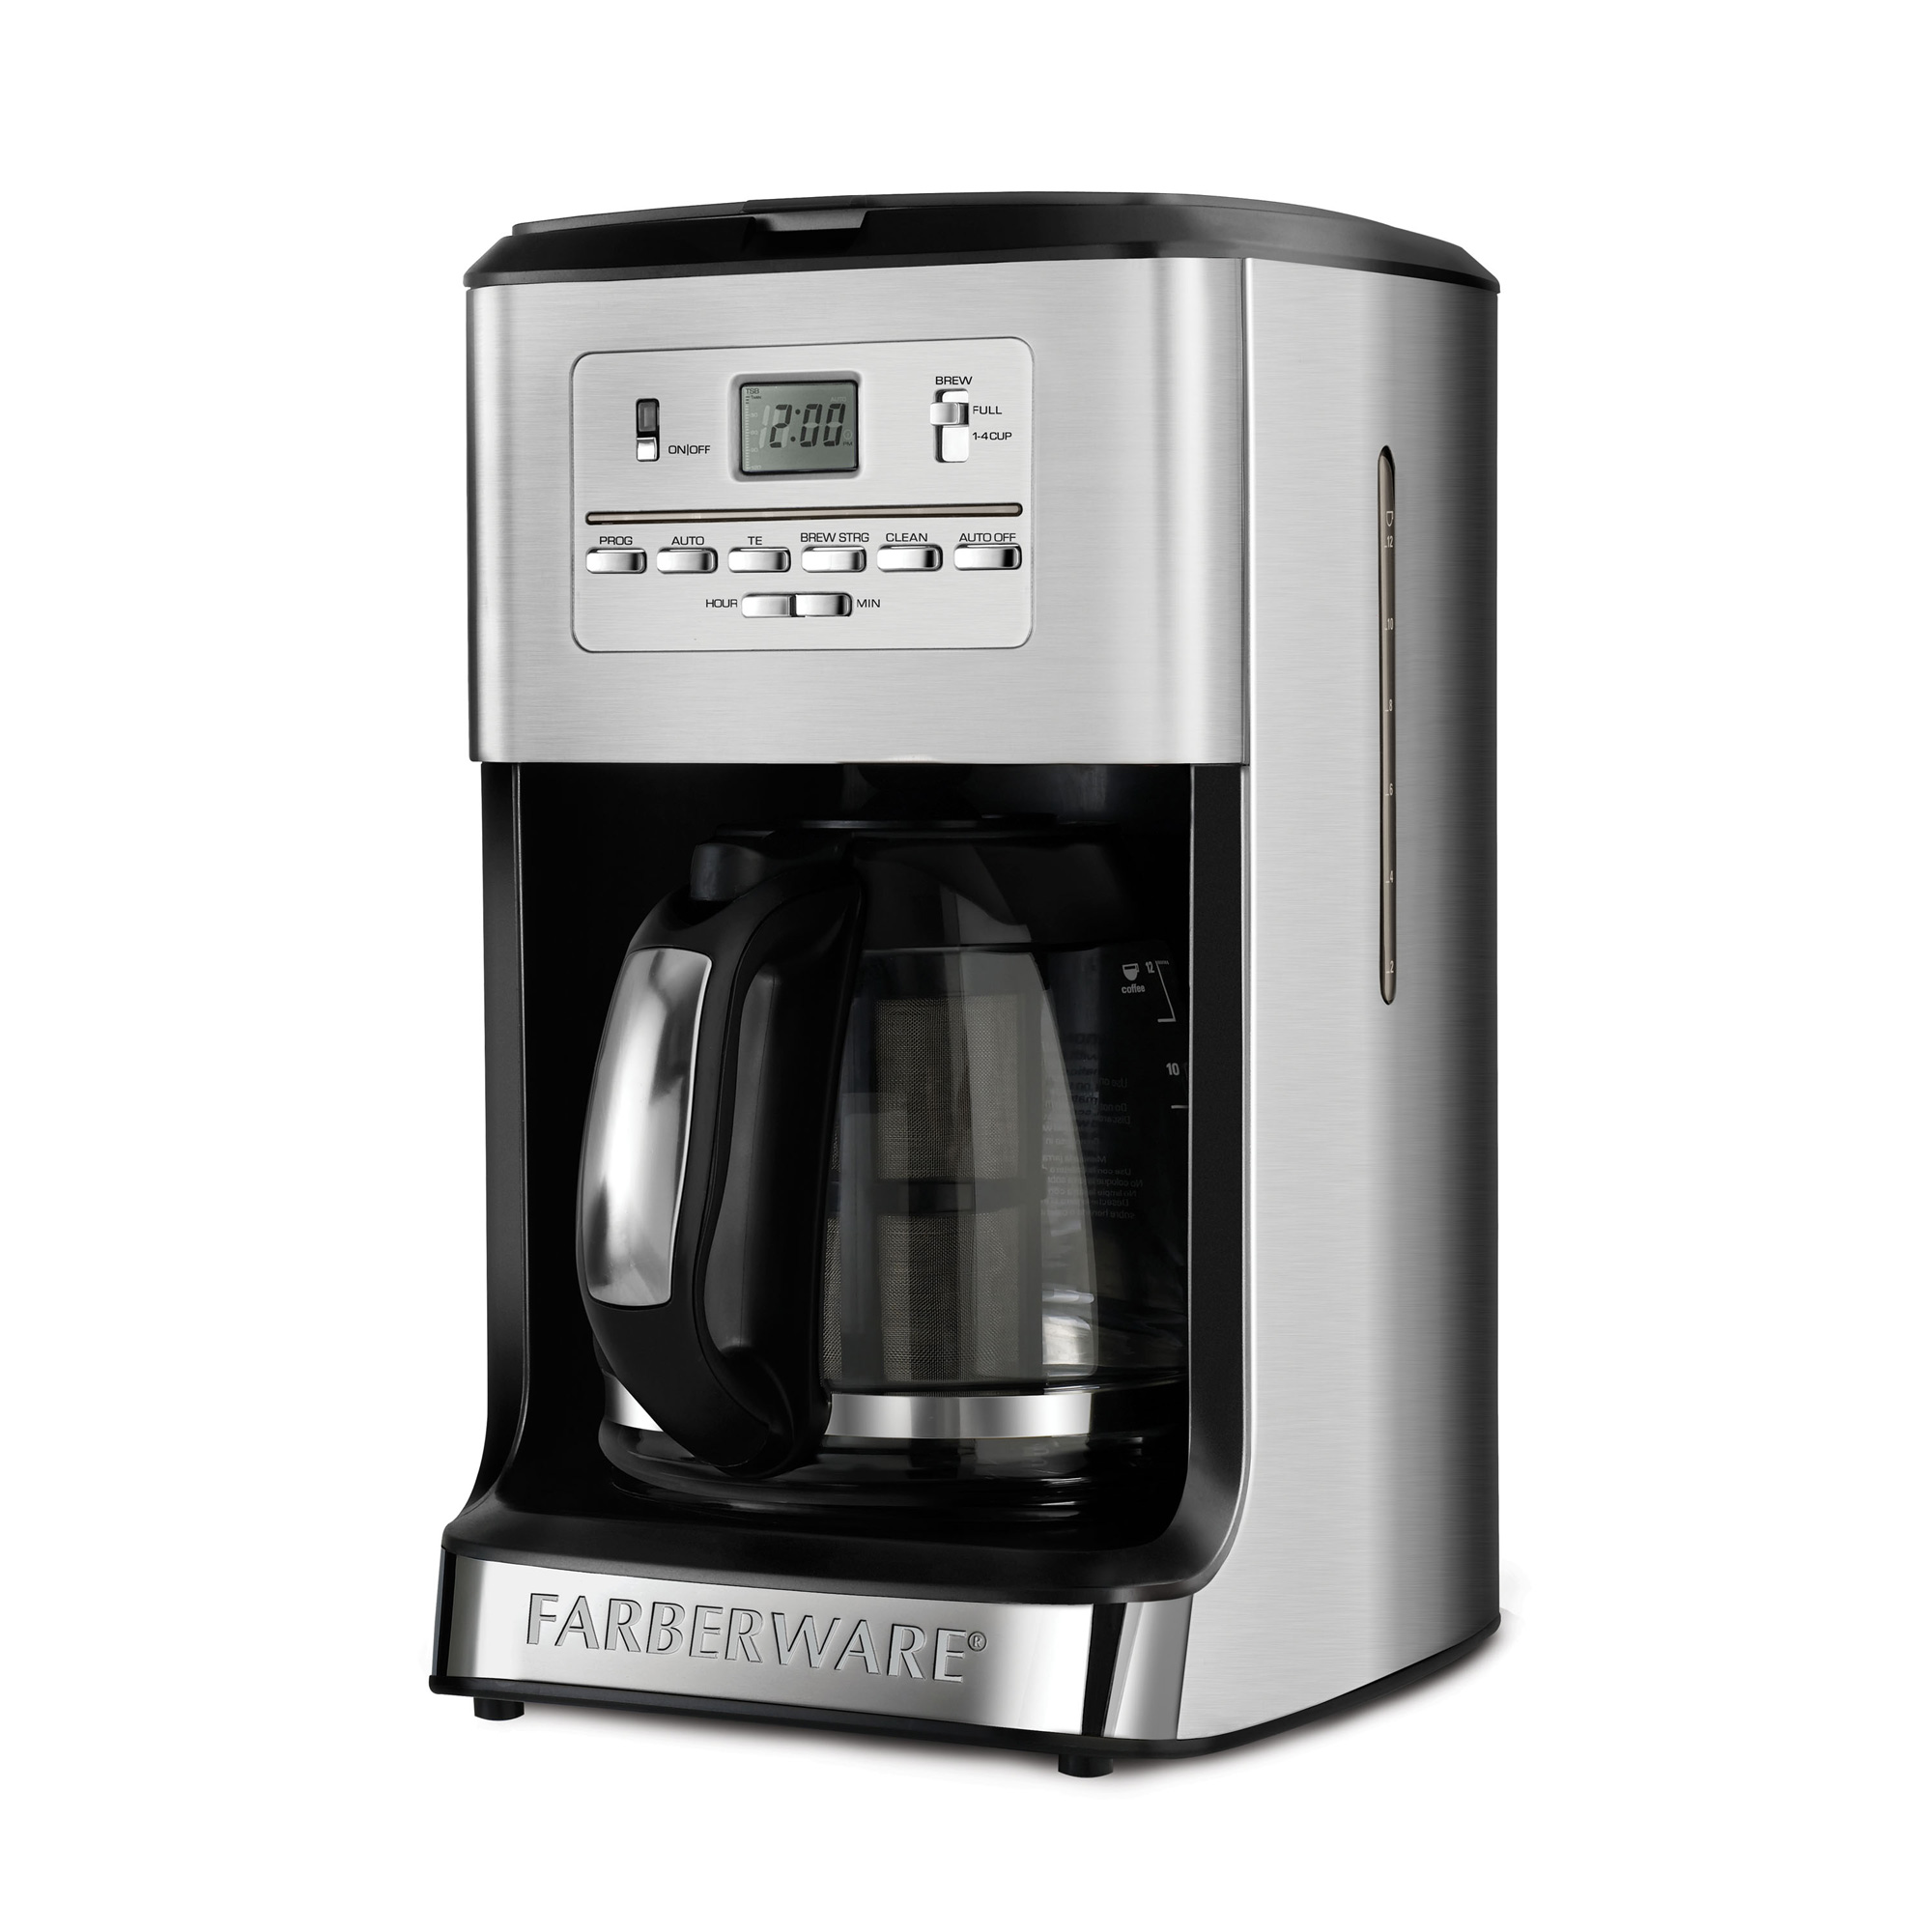 Farberware Coffee Maker Cleaning : farberware cooking classics